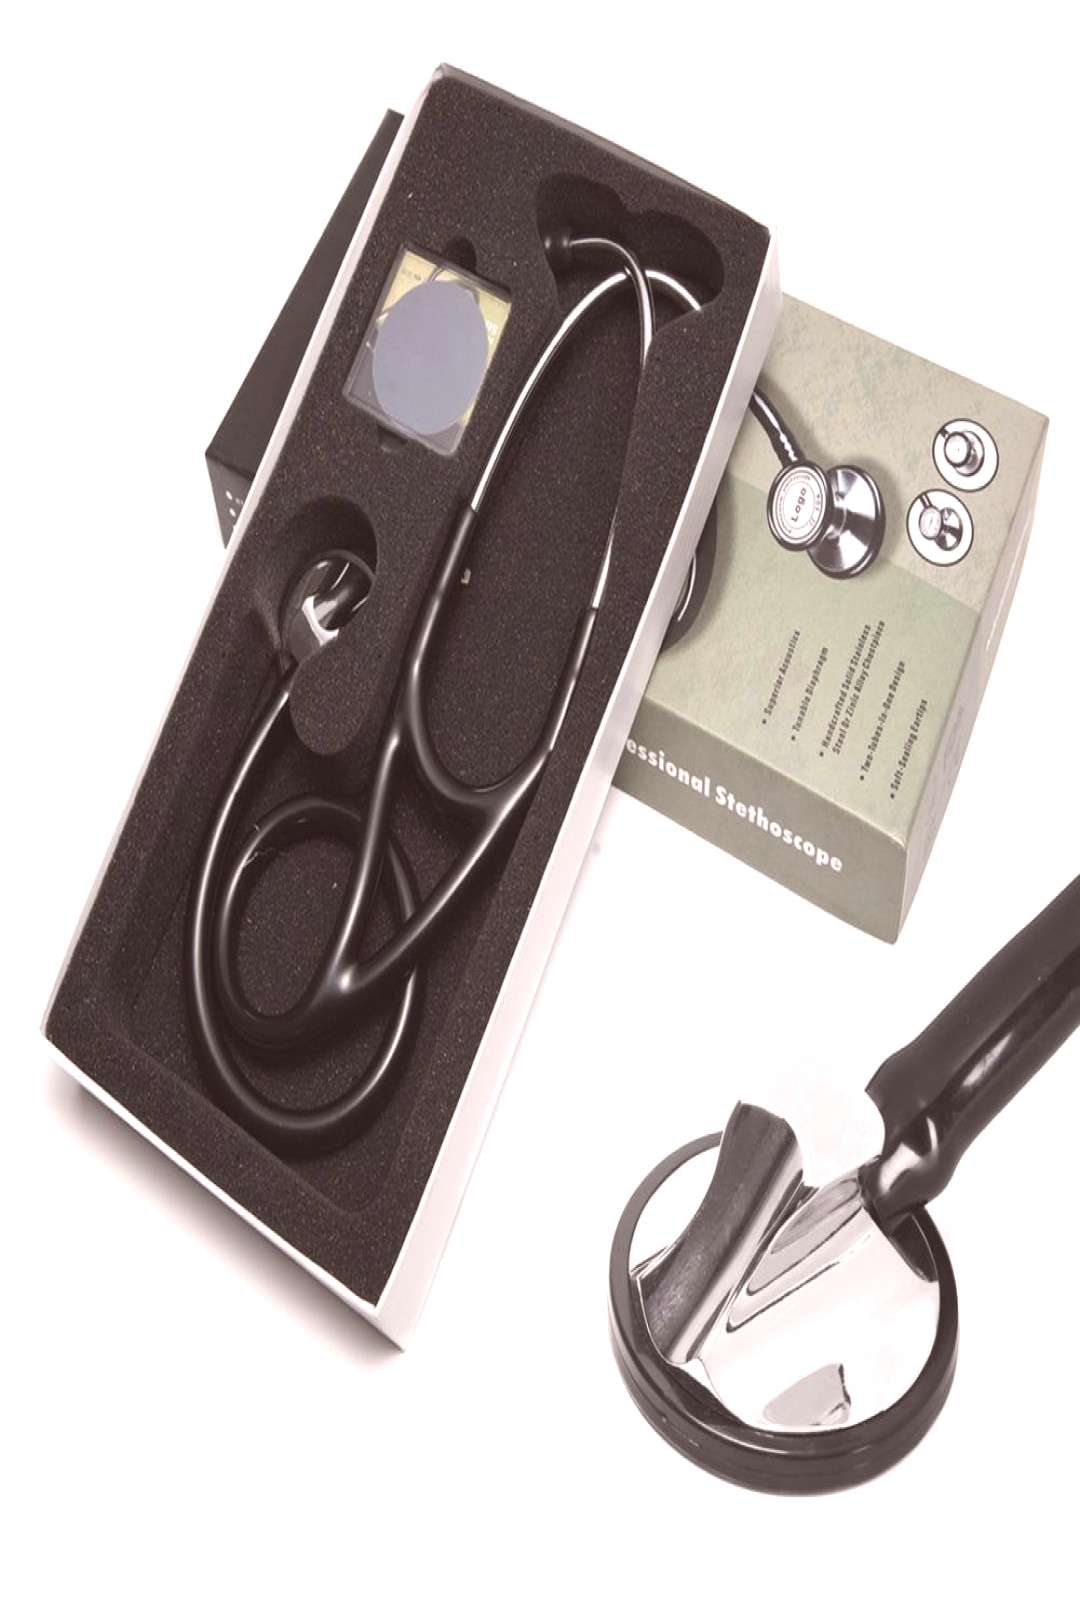 Professional Heart Lung Cardiology Stethoscope Doctor Student Medical Equipment Device Medical Doct